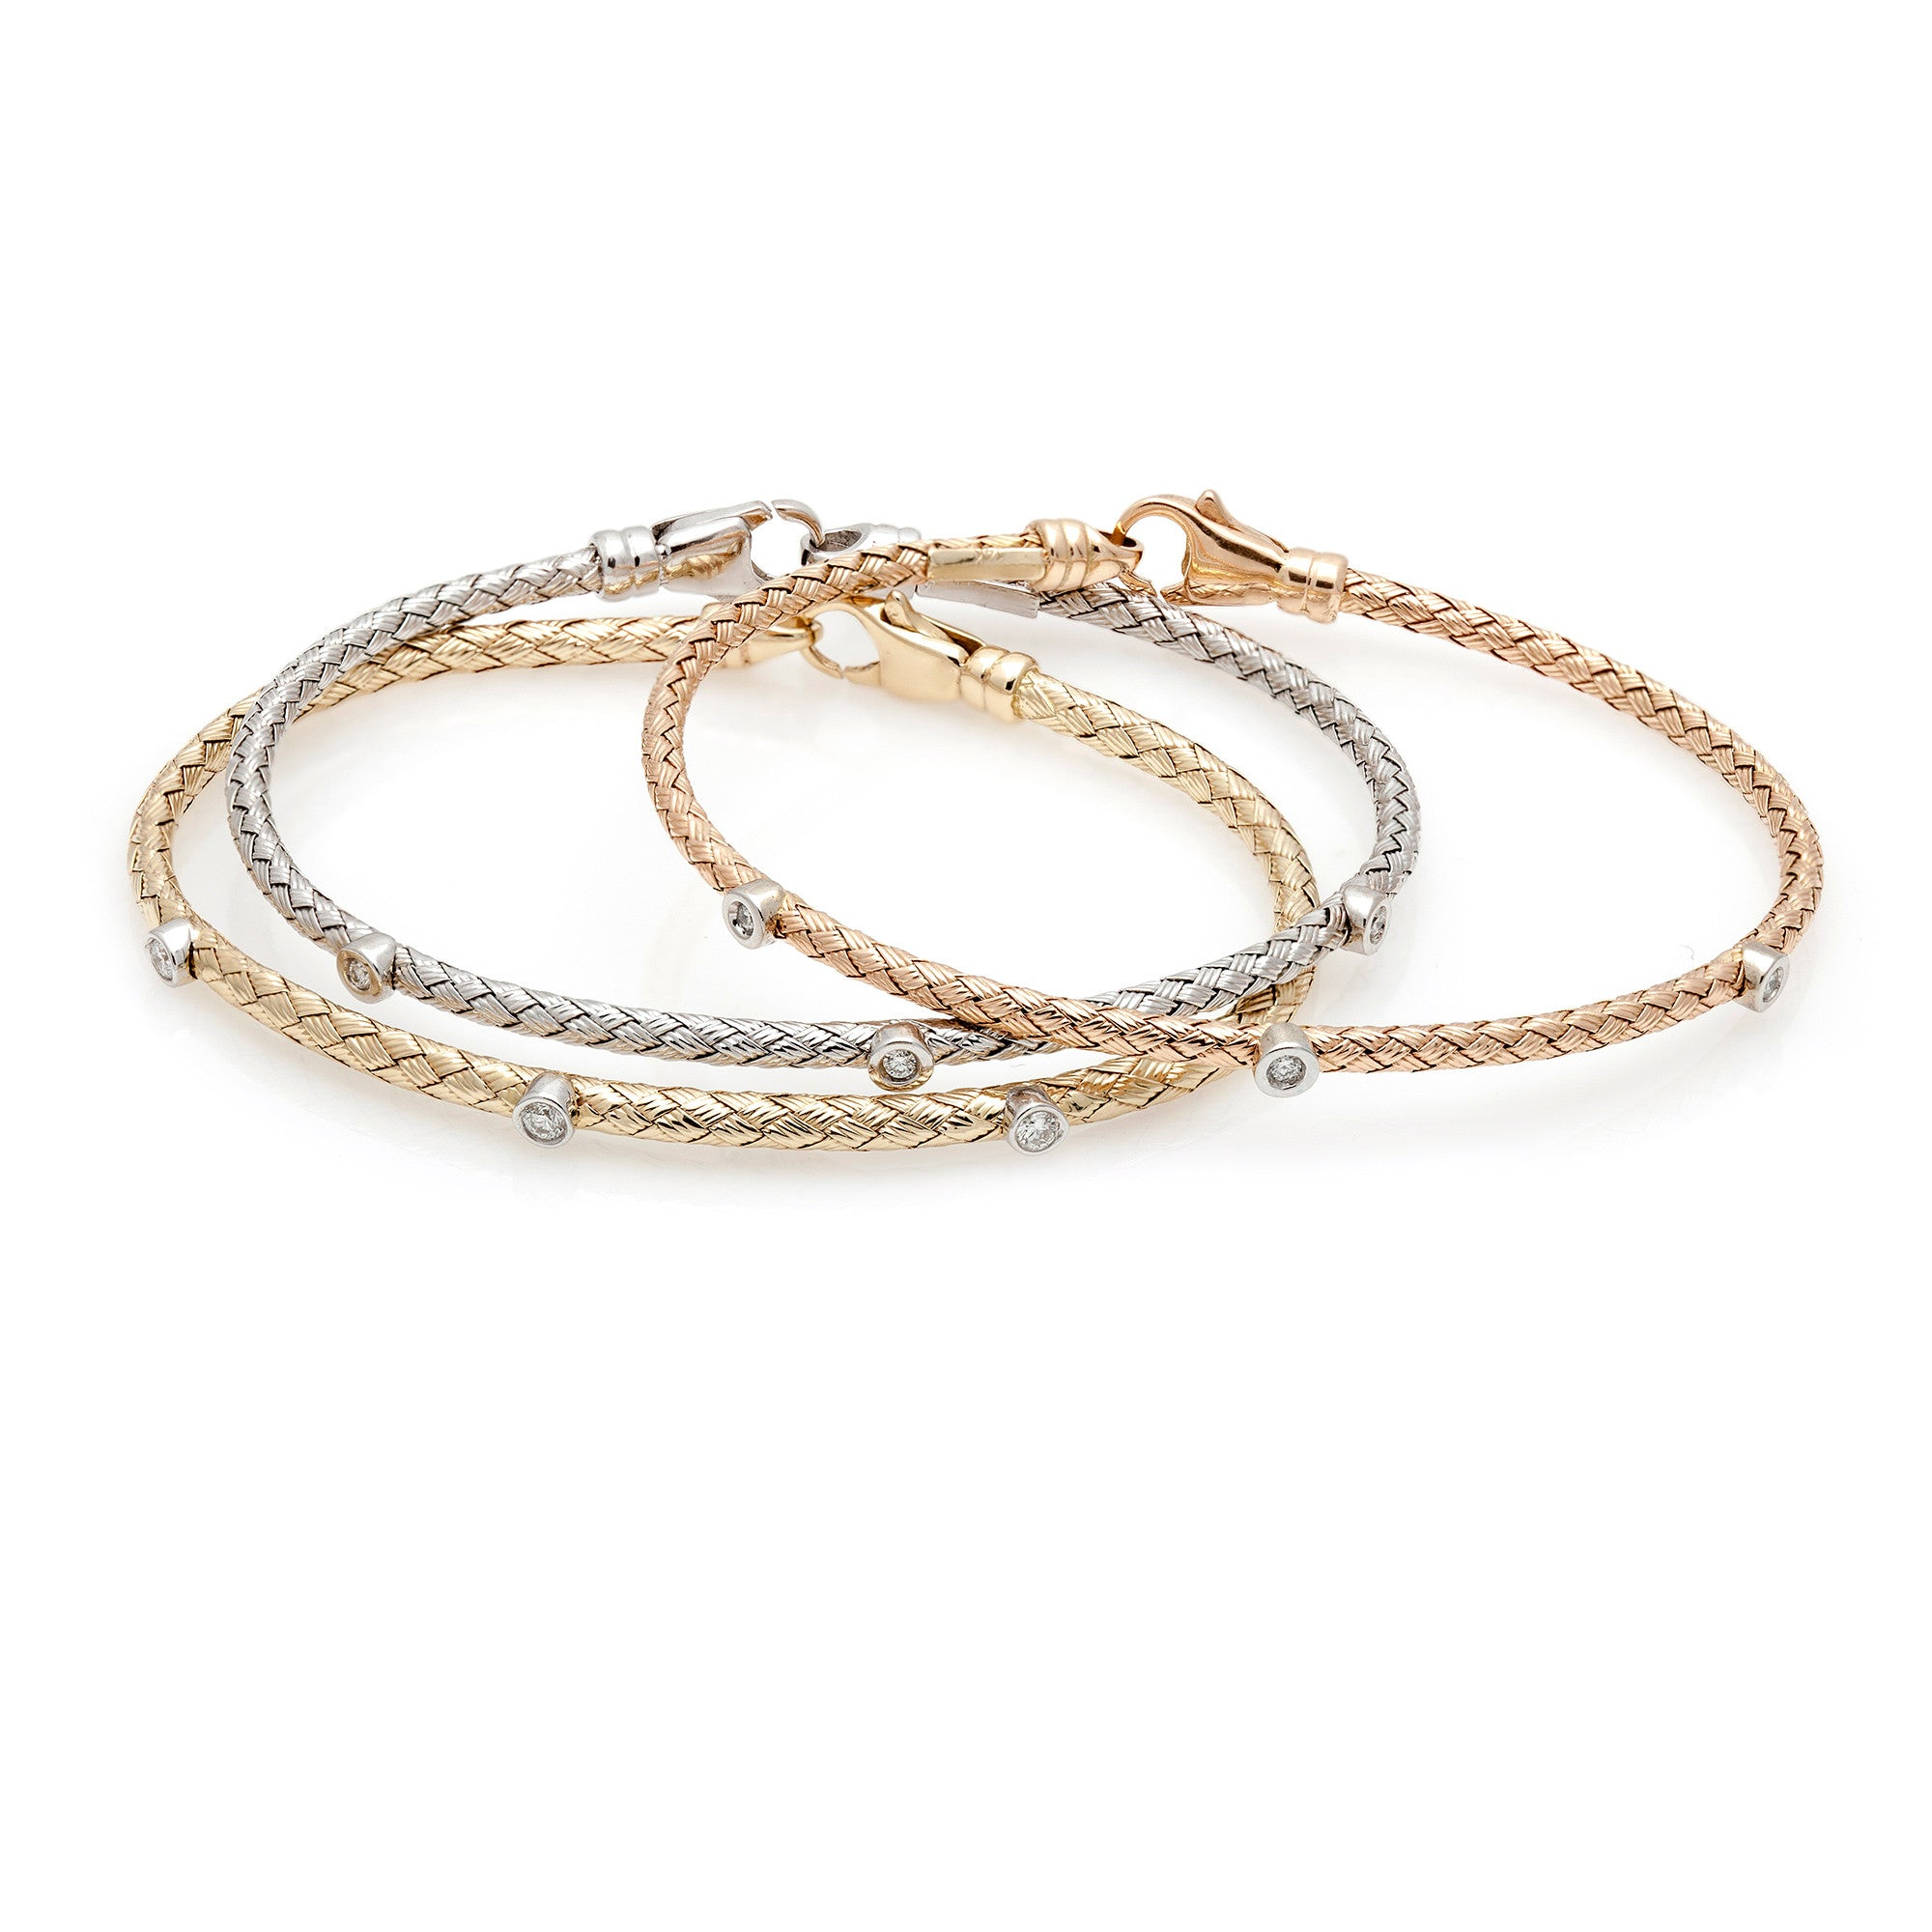 Narrow Gold & Diamond Mesh Bangle-60% OFF!